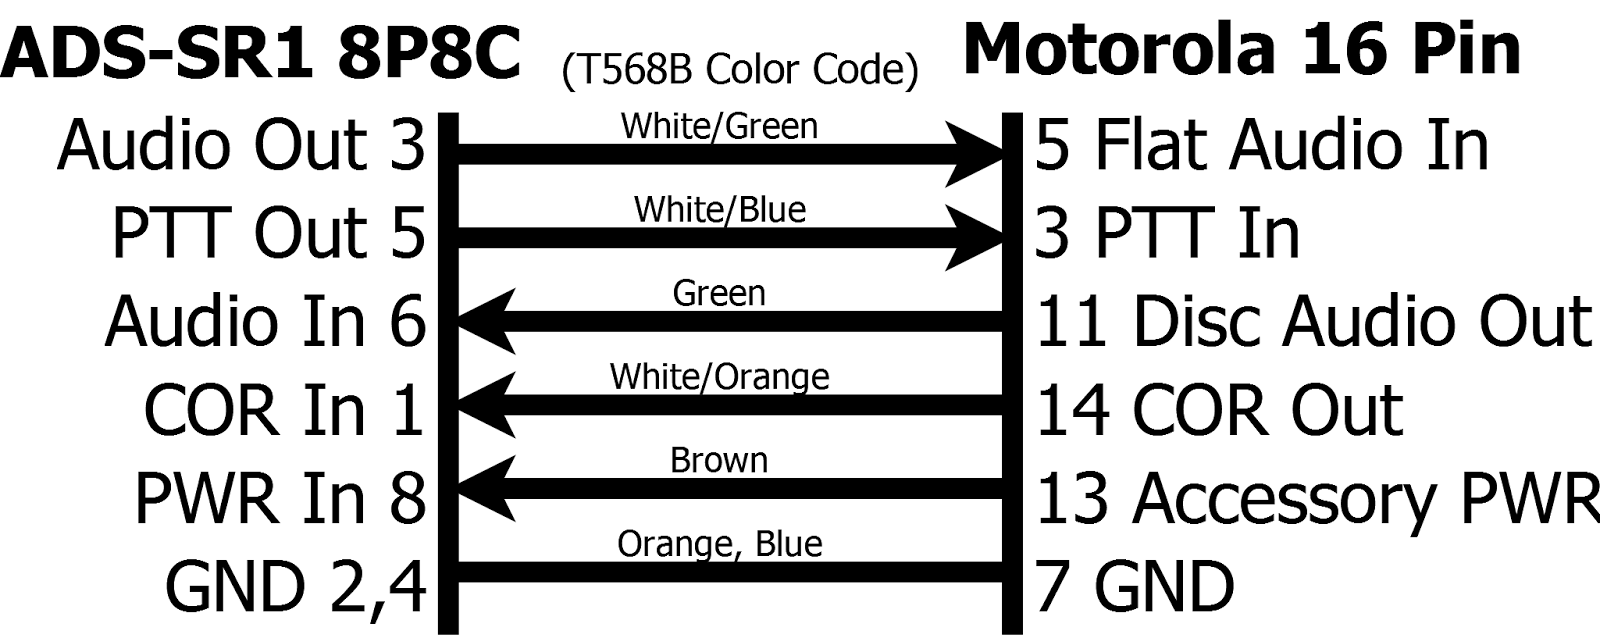 pinout diagram for the interface cable including the color code assuming that you crimp the ads sr1 side as if it were a standard t568b ethernet cable or  [ 1600 x 638 Pixel ]